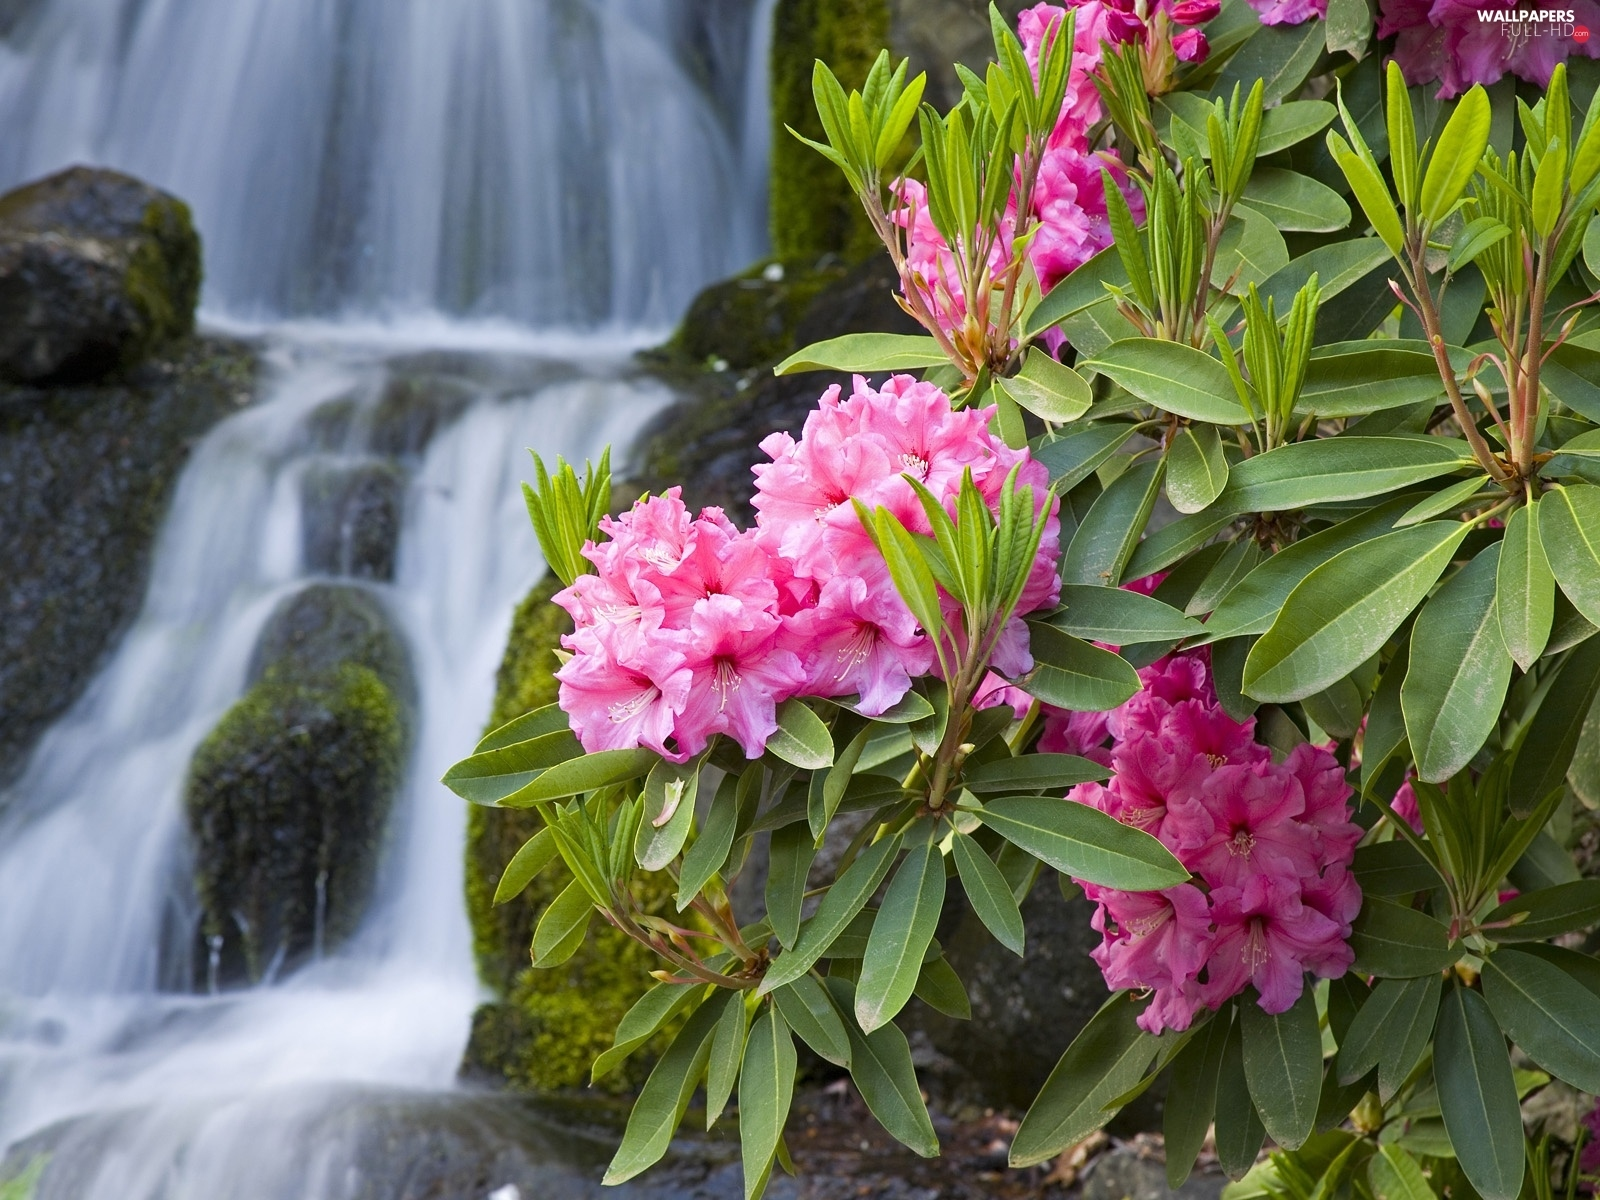 Rhododendrons, waterfall, Flowers